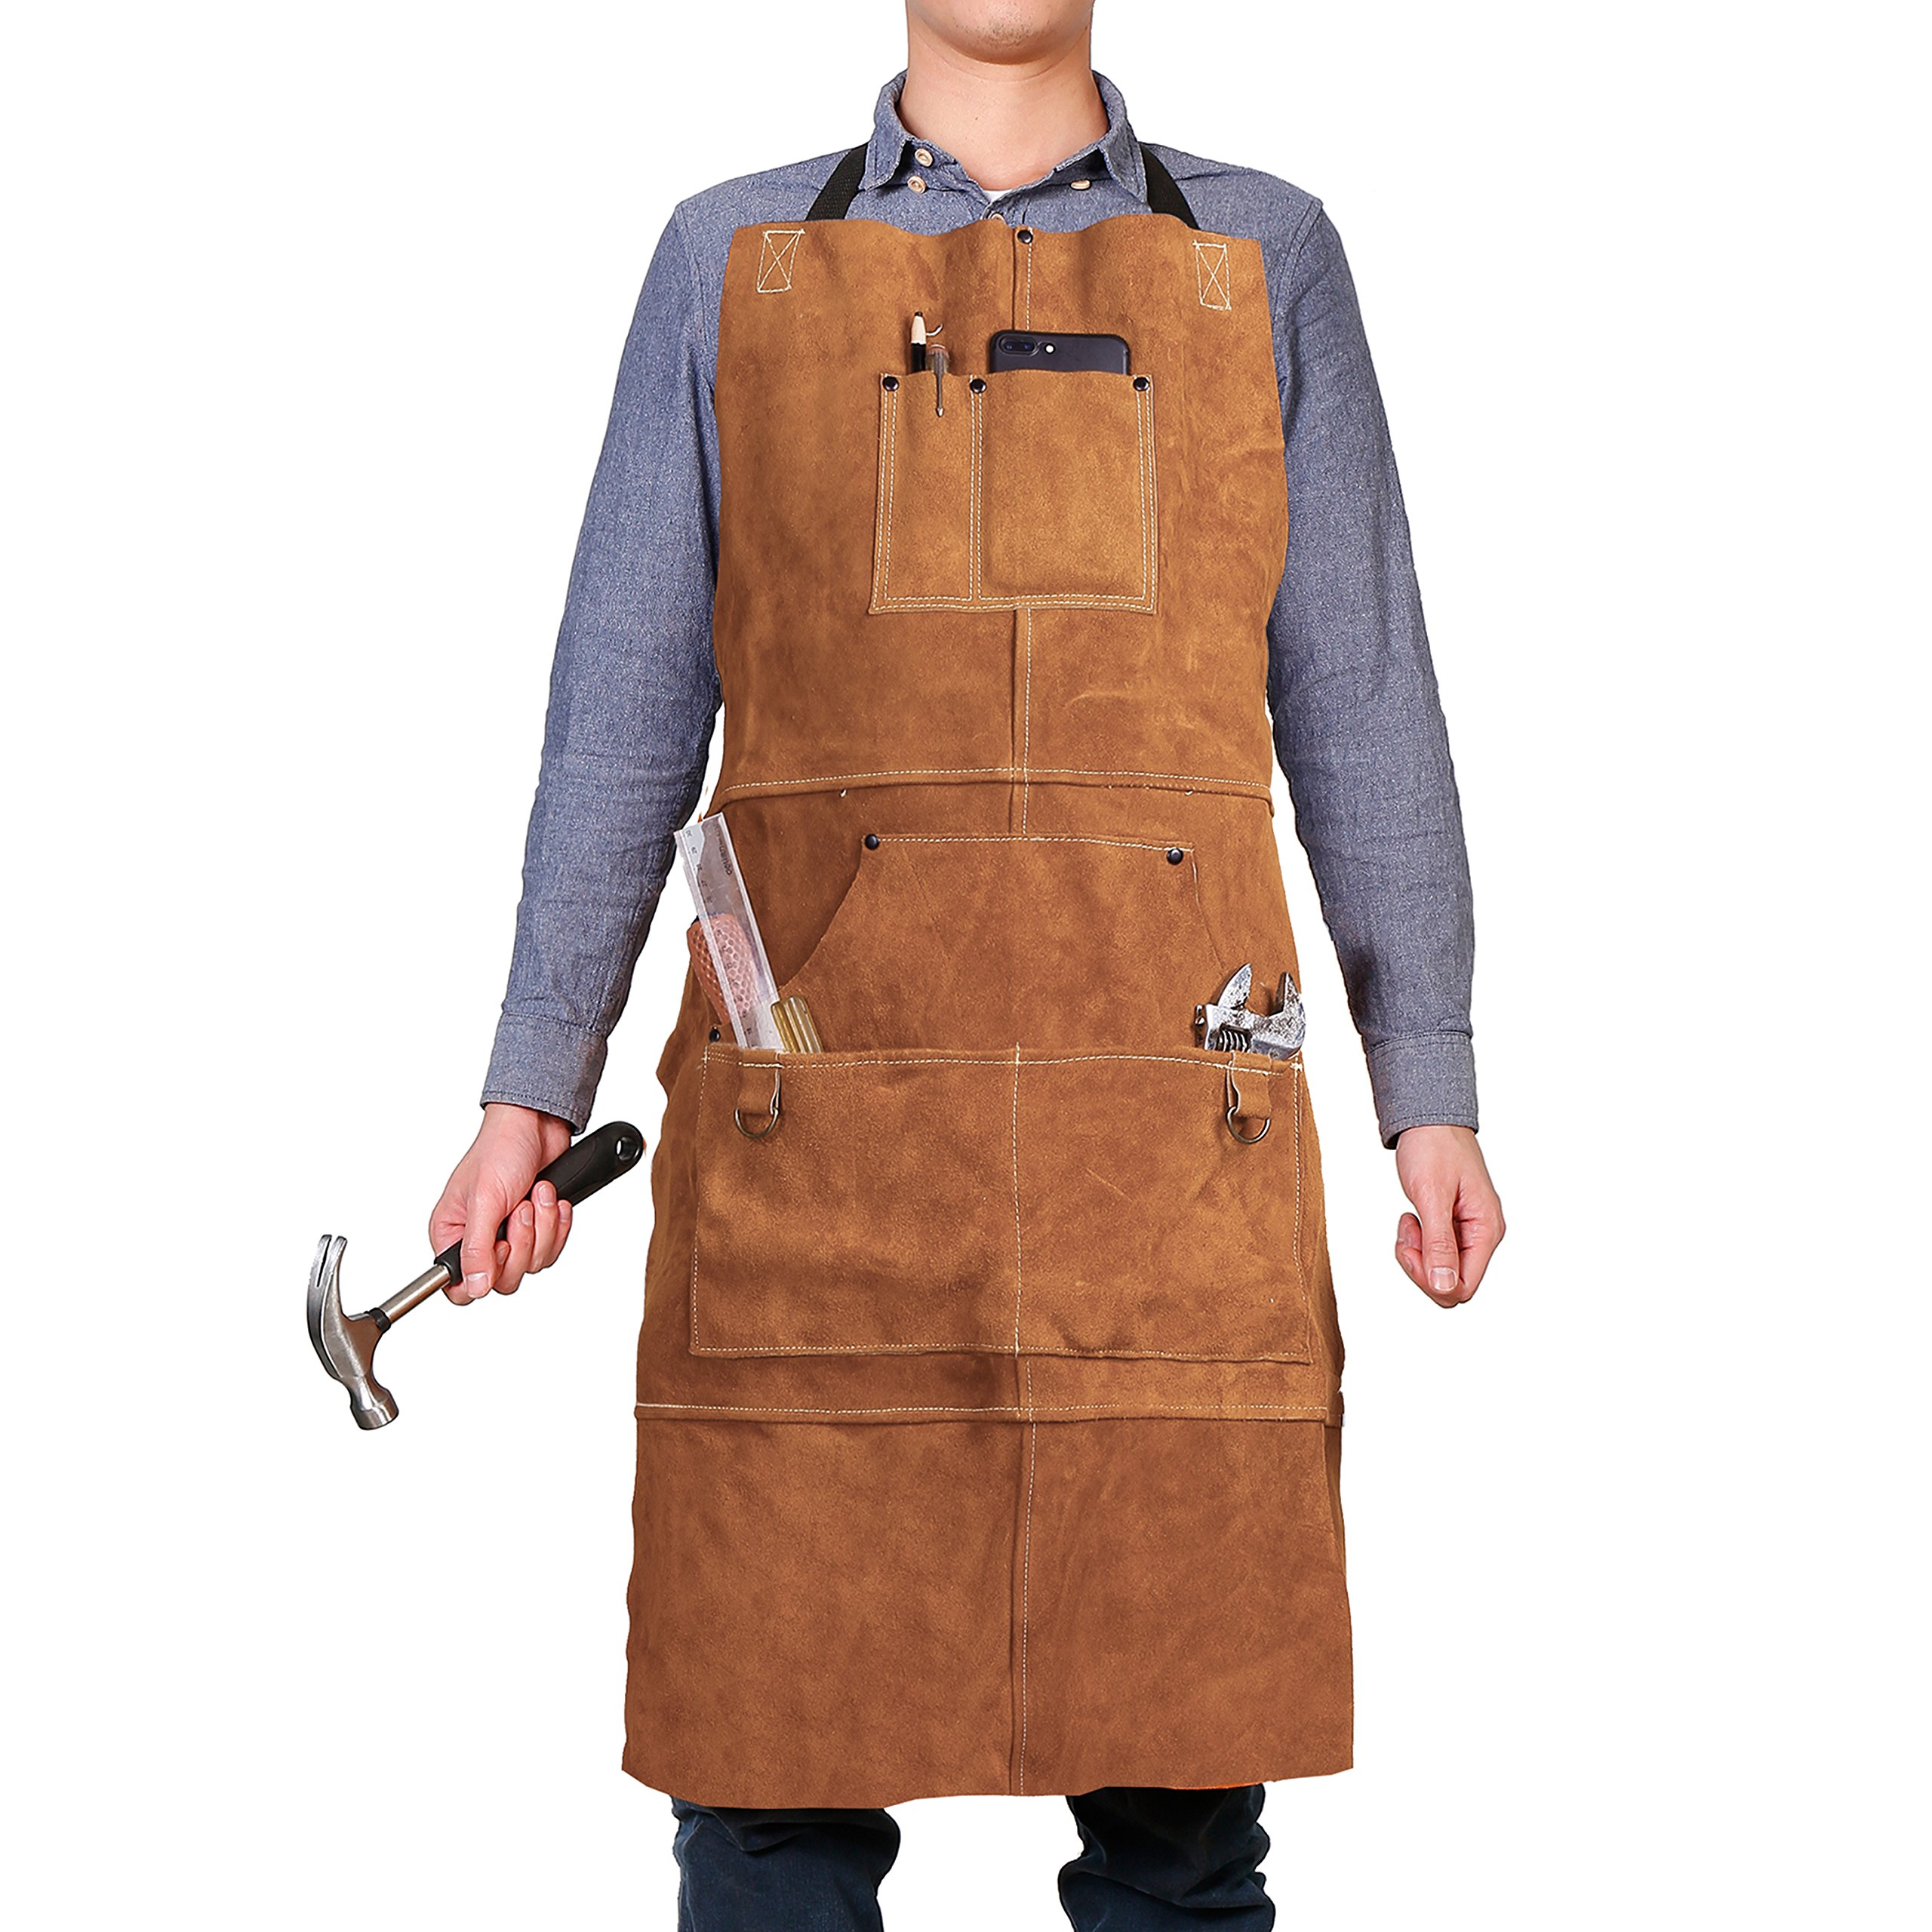 Leather Work Shop Apron with 6 Tool Pockets by QeeLink - Heat & Flame Resistant Heavy Duty Welding Apron, 24'' x 36'', Adjustable M to XXL for Men & Women (Brown)